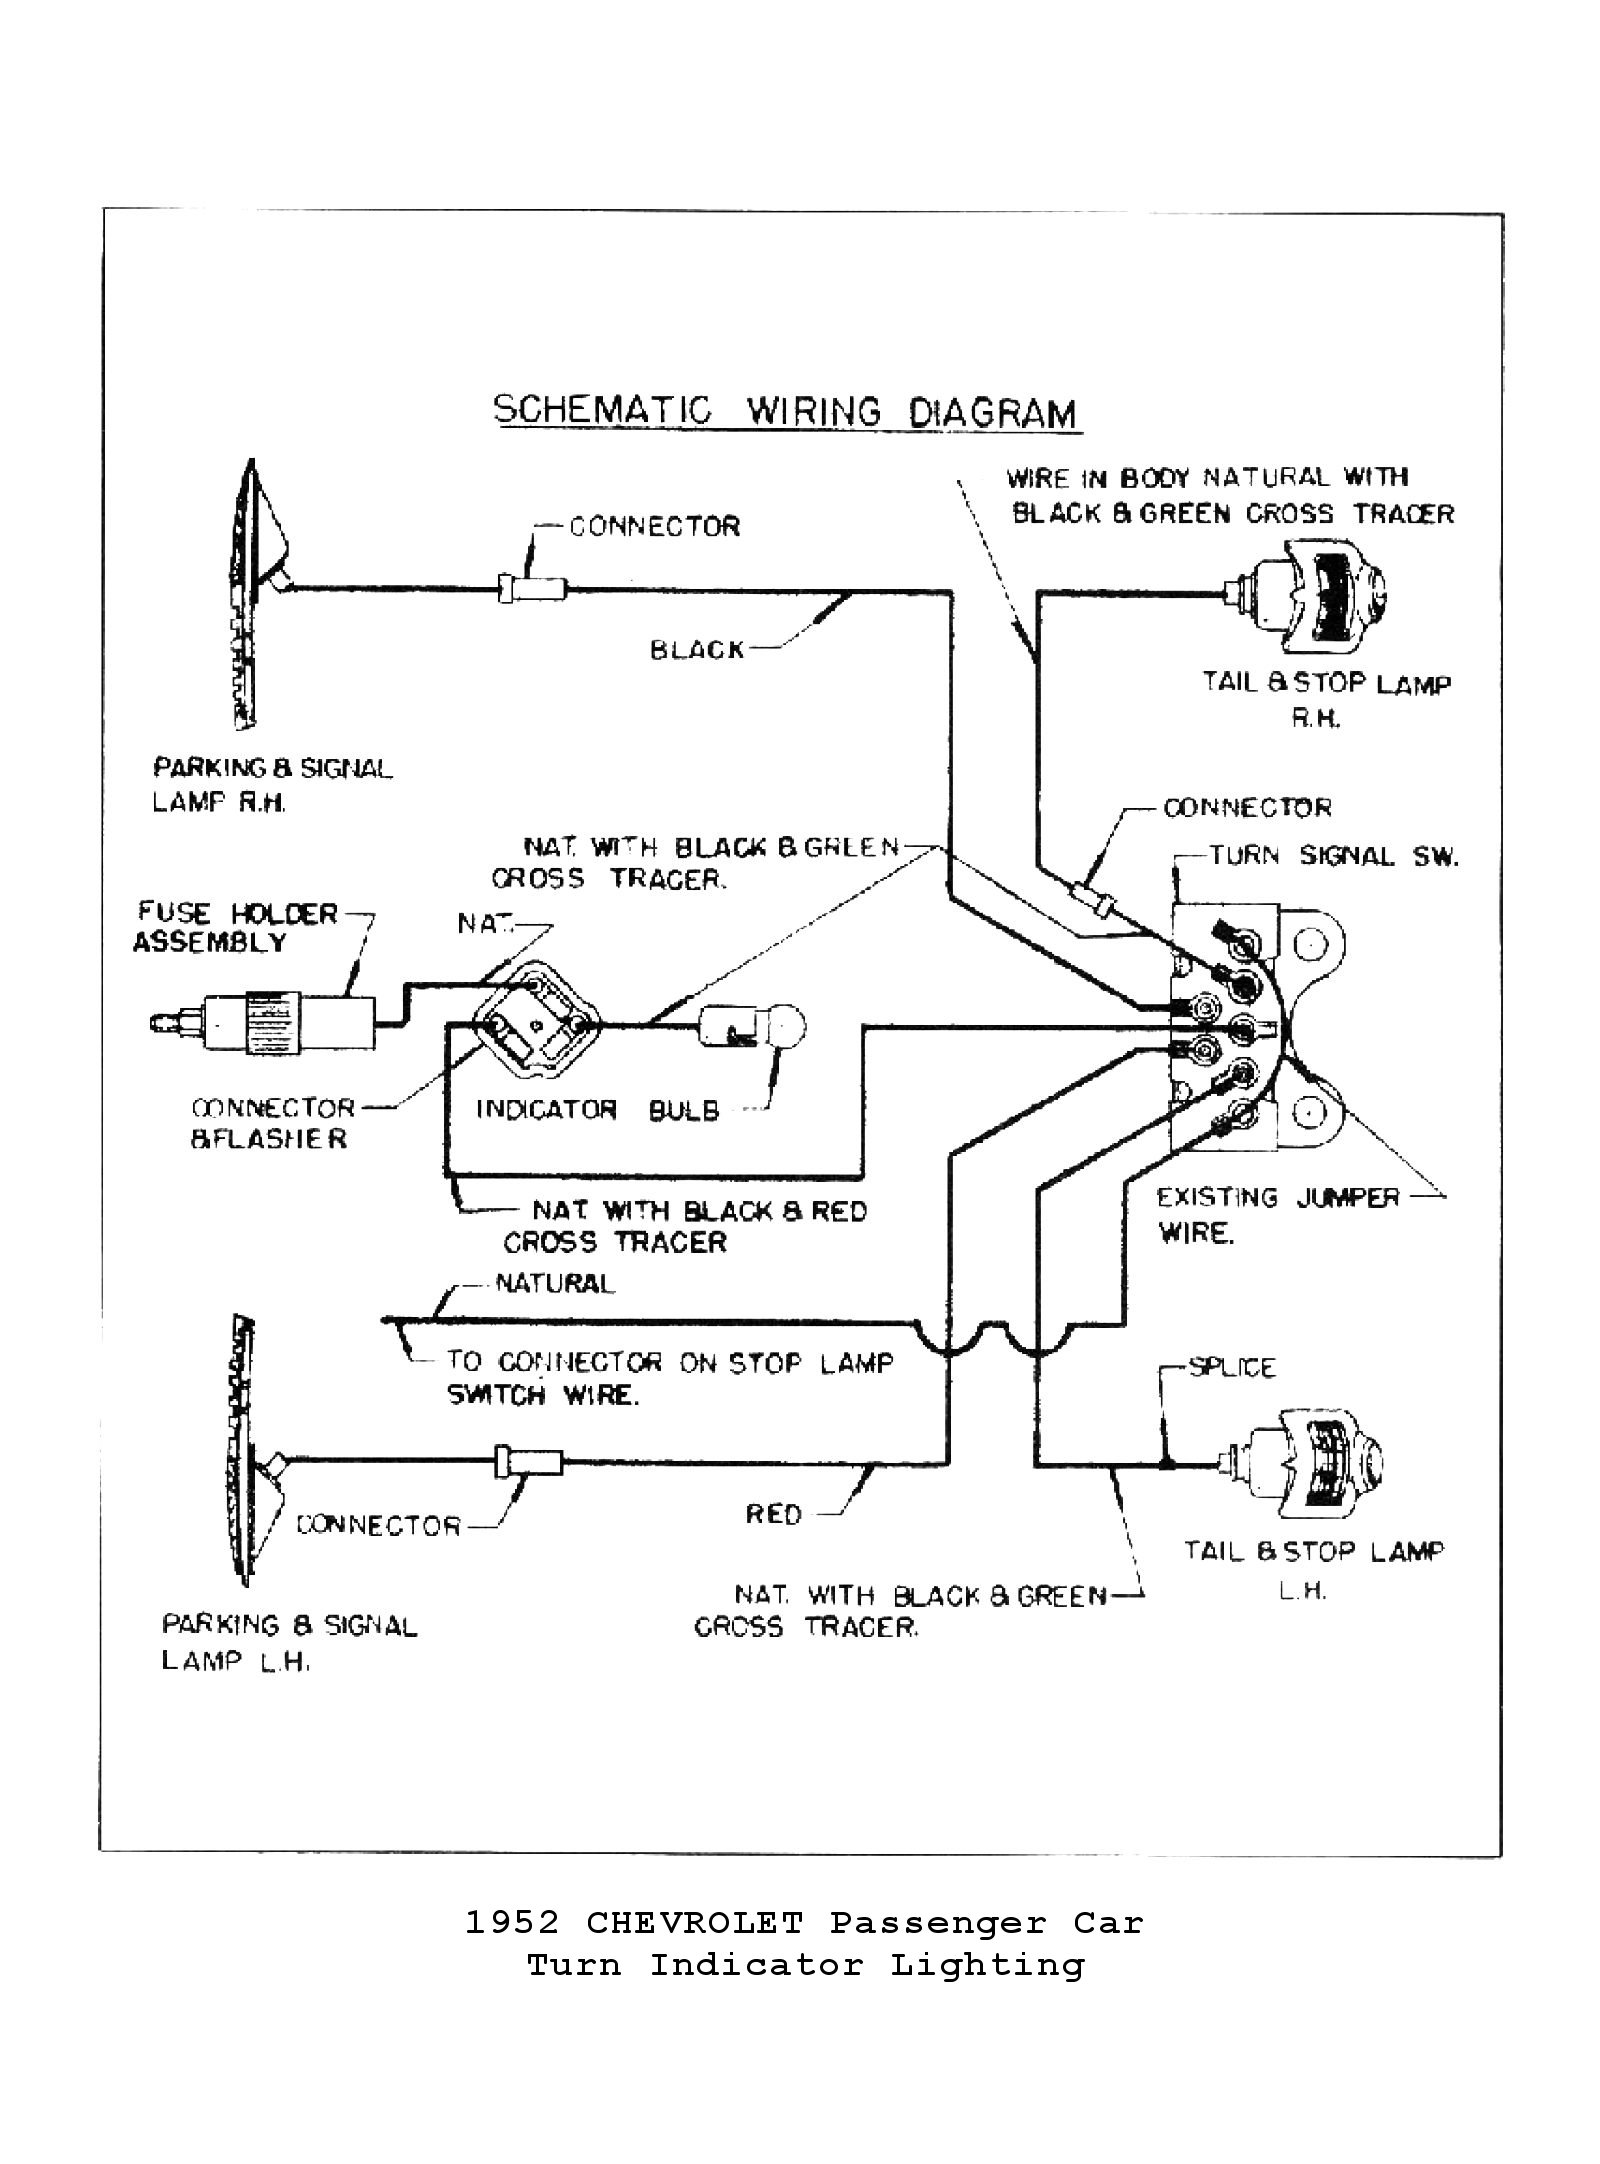 chevy truck wiring schematics 1953 chevy wiring diagram 1953 image wiring diagram 1948 chevy truck wiring diagram 1948 chevy truck